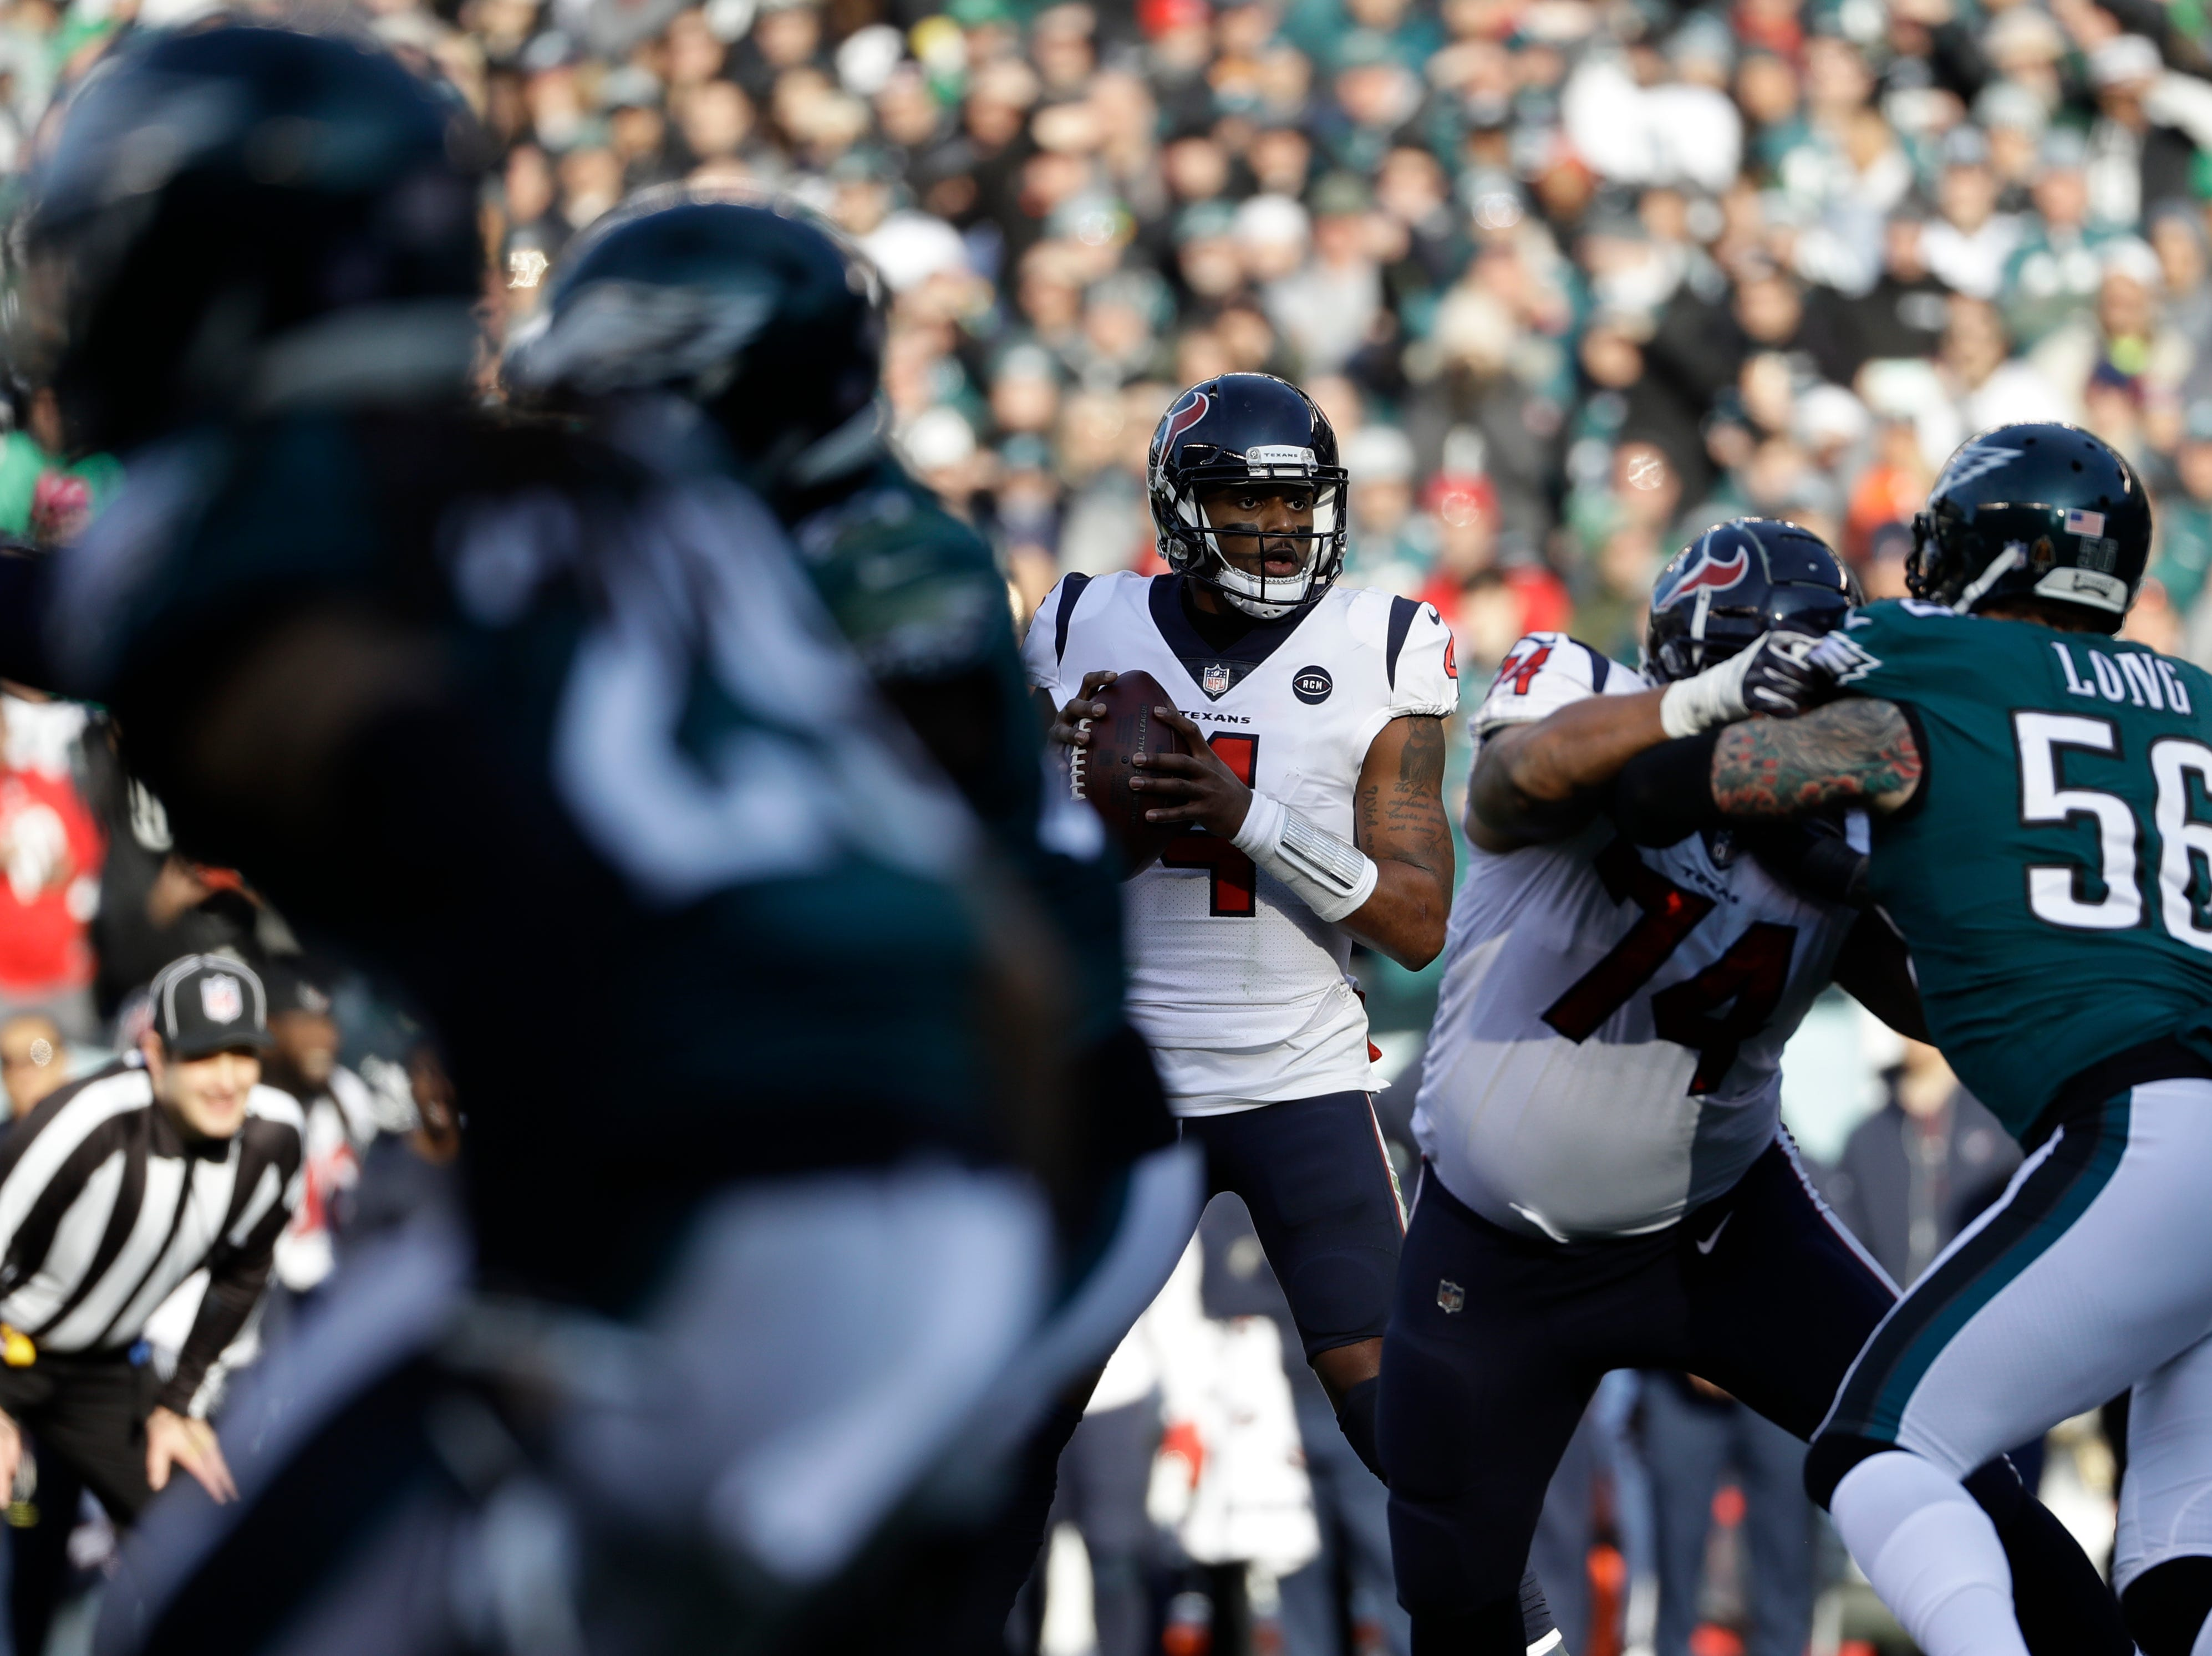 Houston Texans' Deshaun Watson in action during the first half of an NFL football game against the Philadelphia Eagles, Sunday, Dec. 23, 2018, in Philadelphia. (AP Photo/Michael Perez)